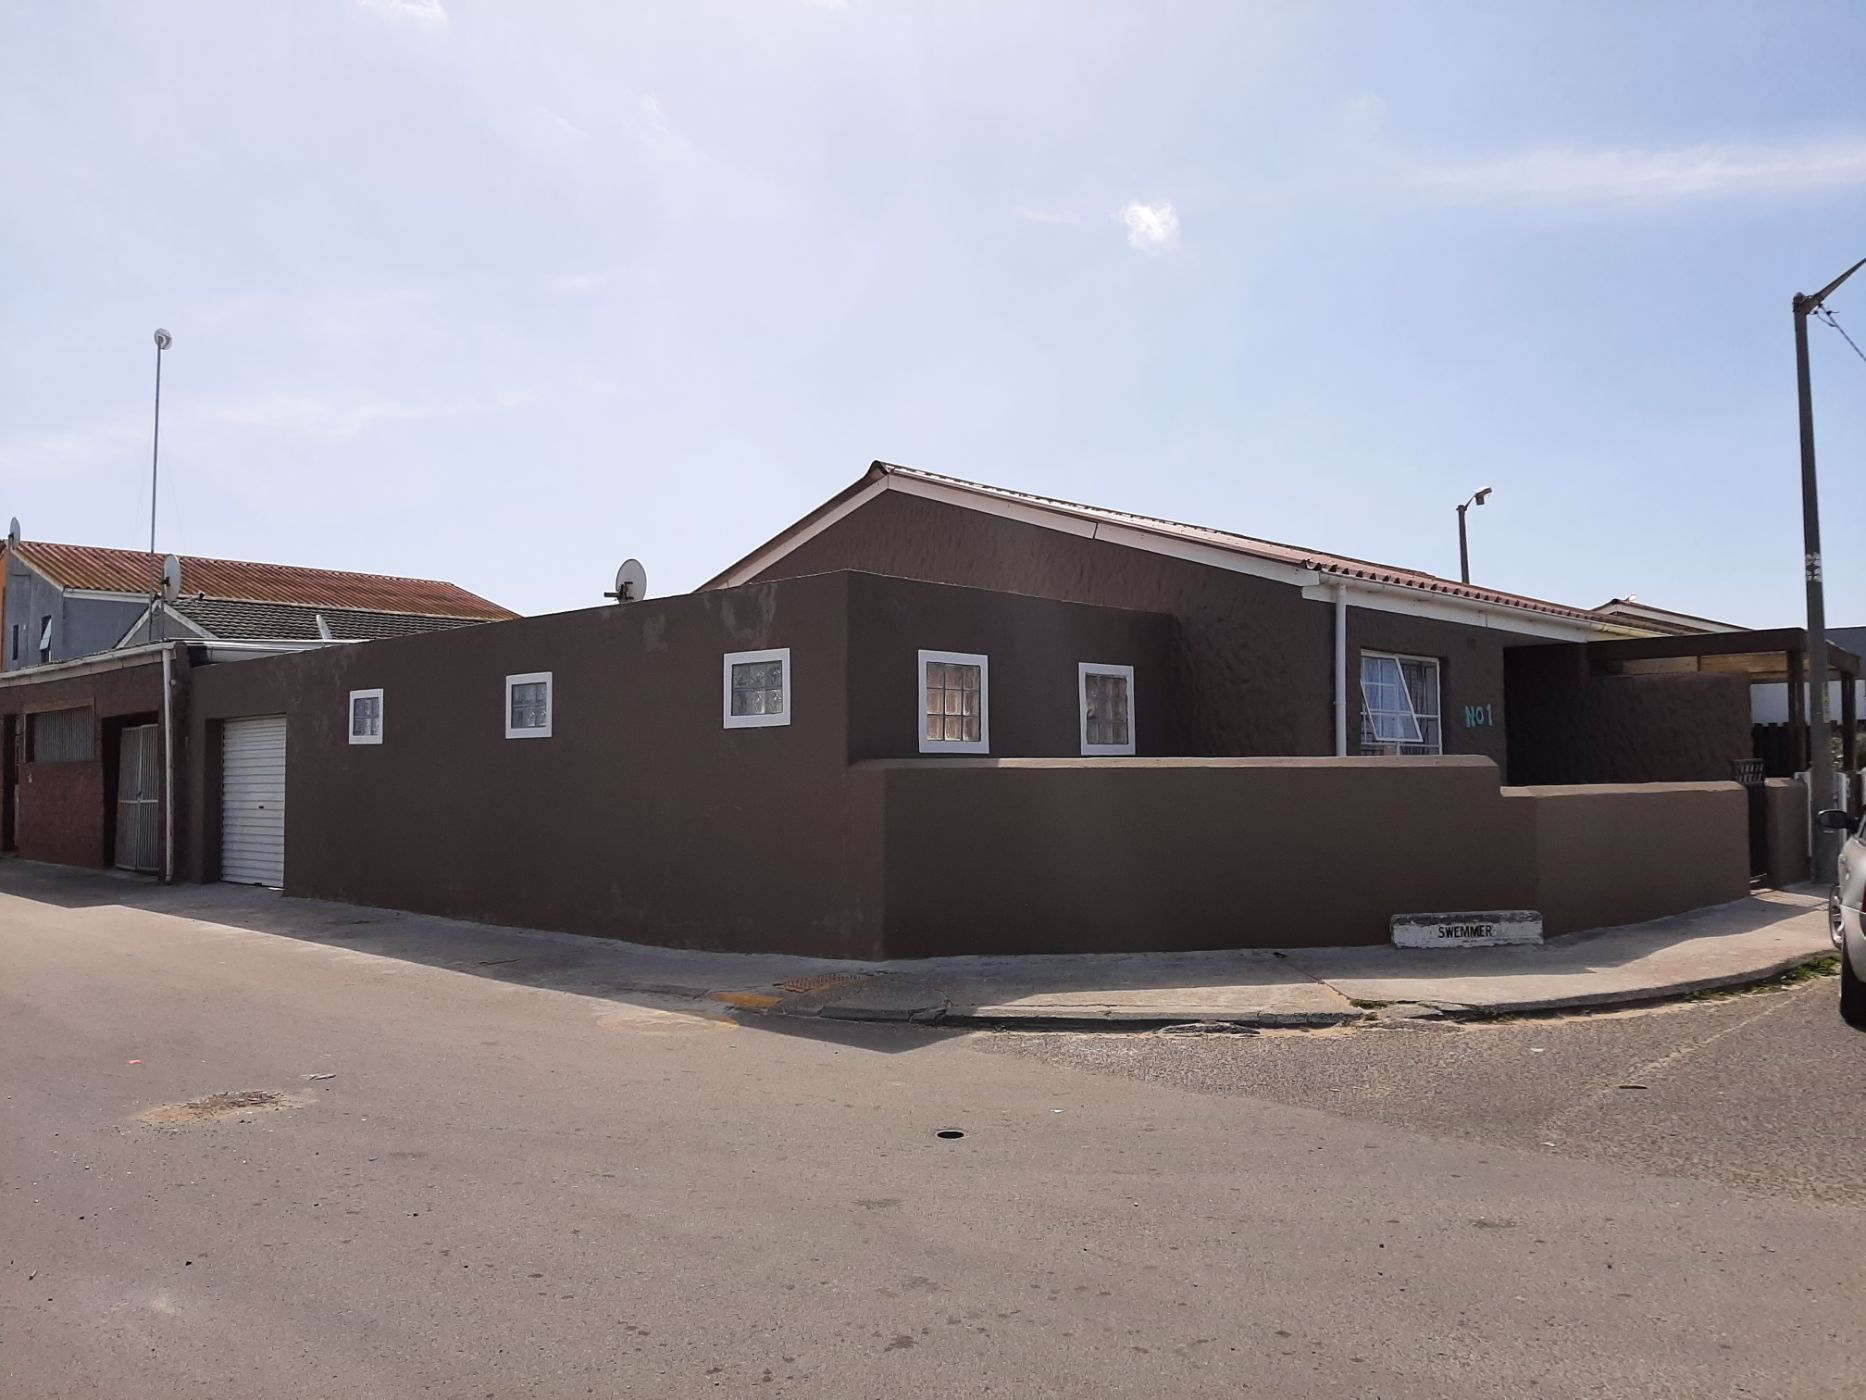 3 bedroom house for sale in Beacon Valley